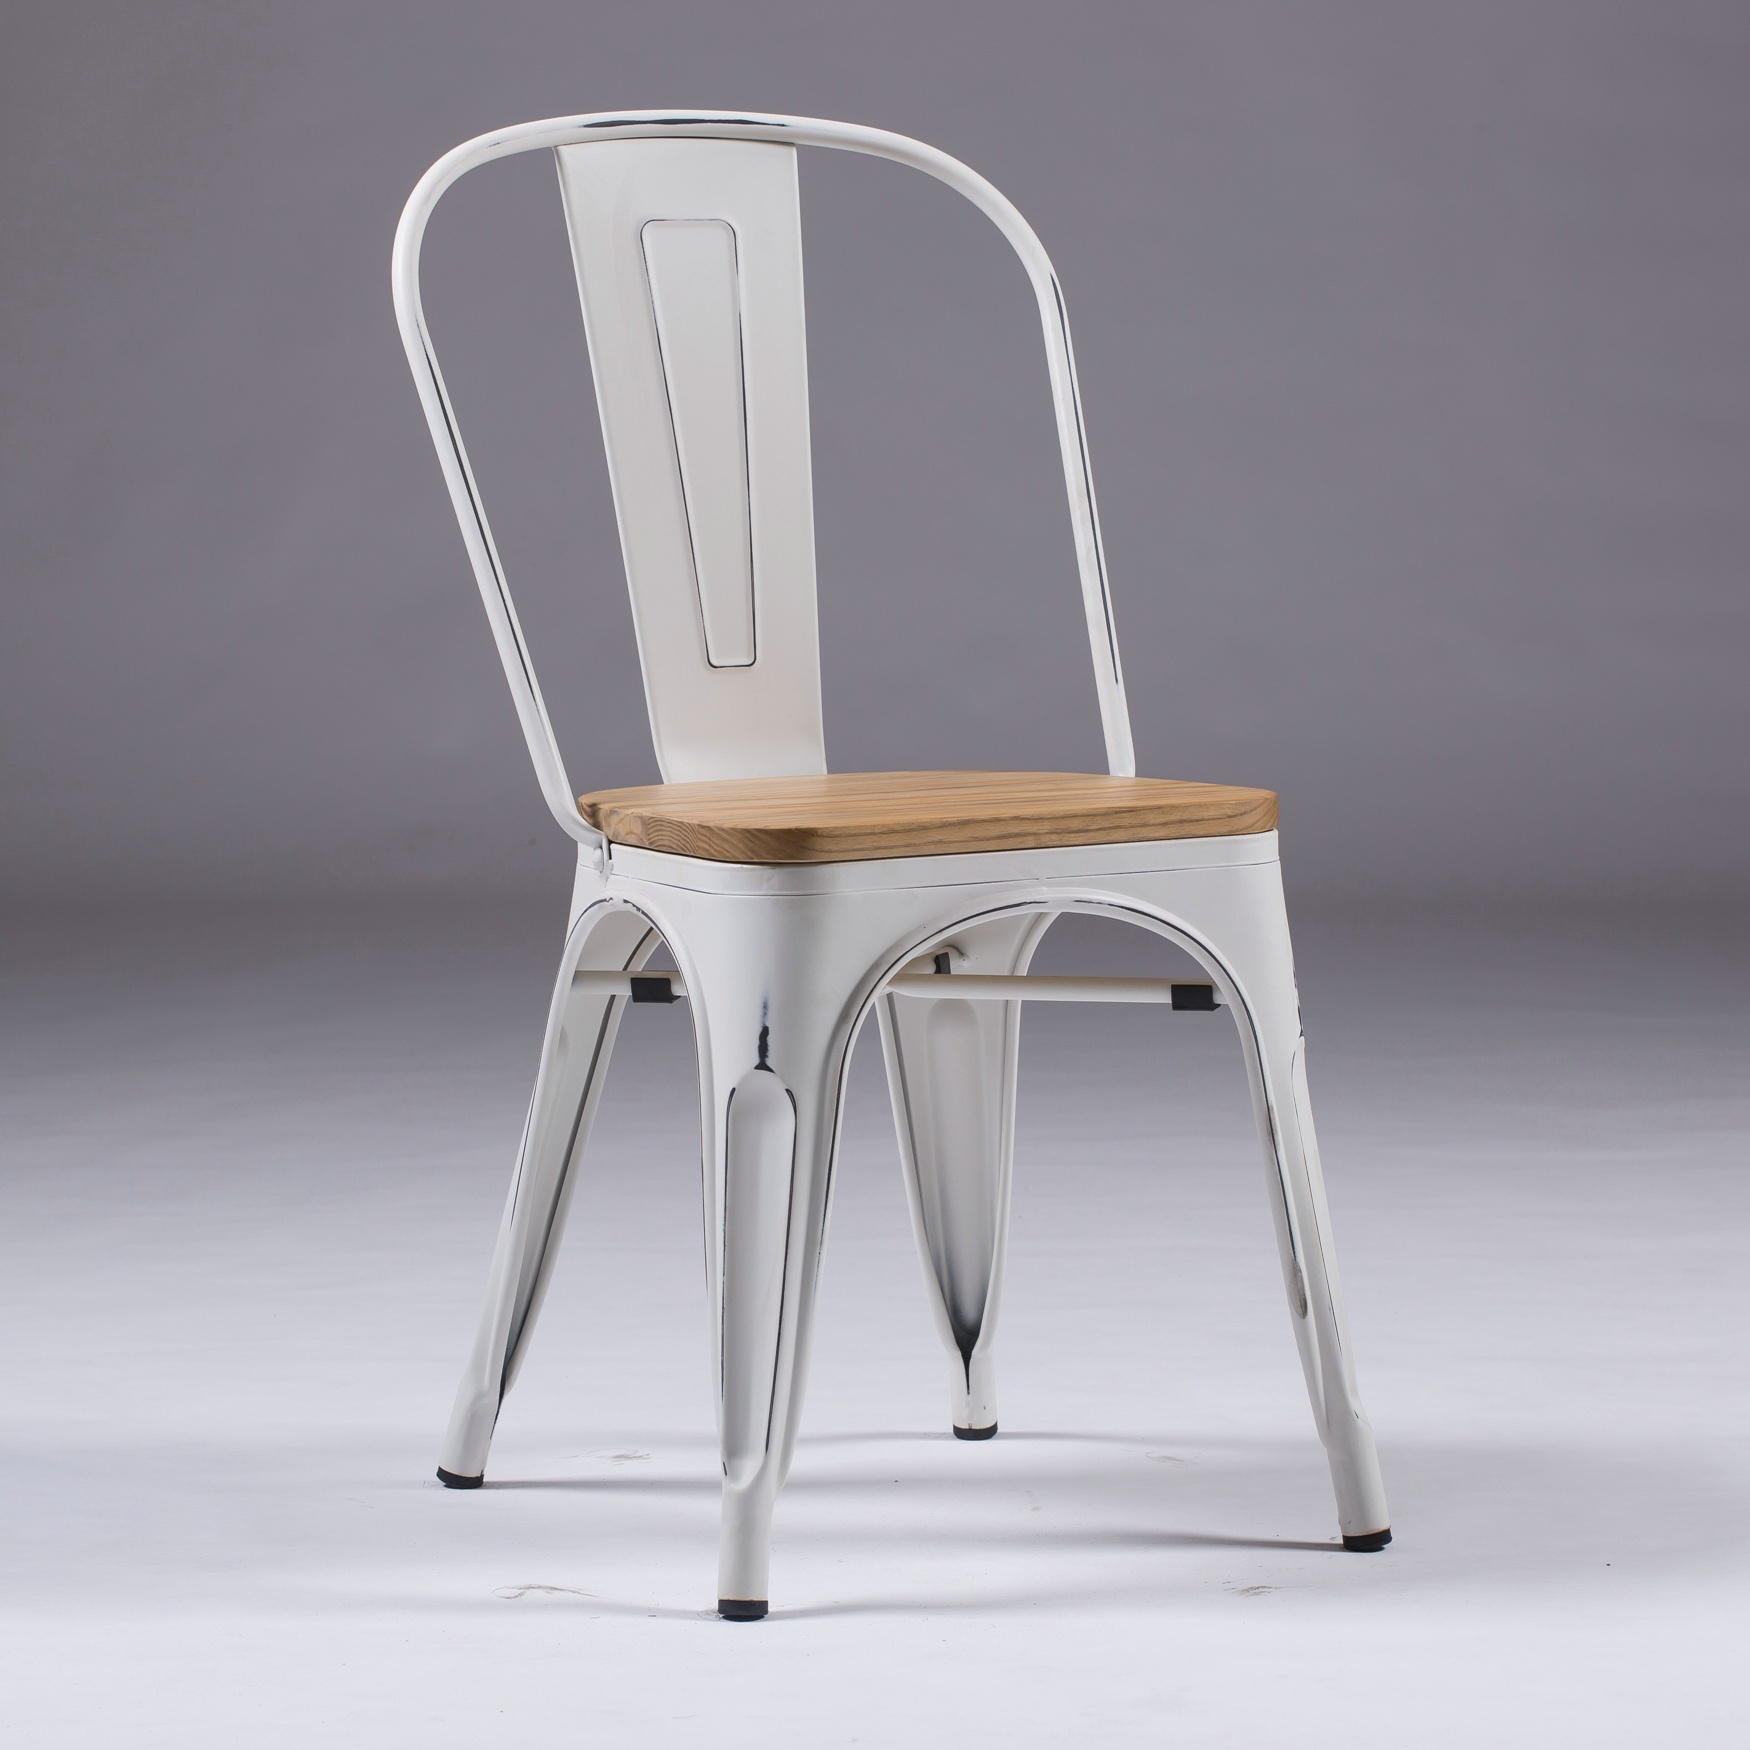 Hot Item Vintage White Tolix Dining Chairs Industrial Metal Stackable Cafe Side Chair W Wood